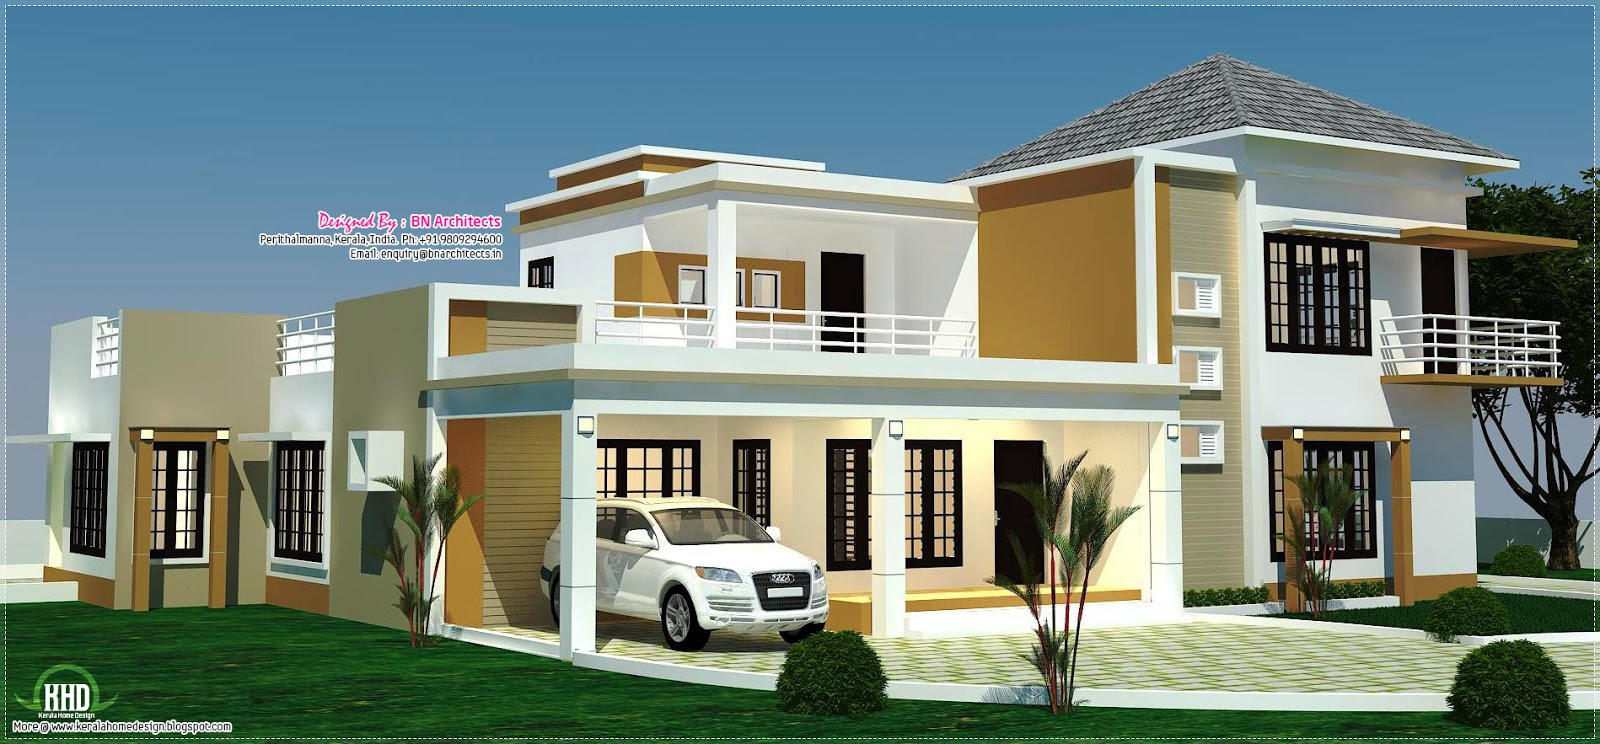 Elevation Plan And Side Views : Floor plan d views and interiors of bedroom villa